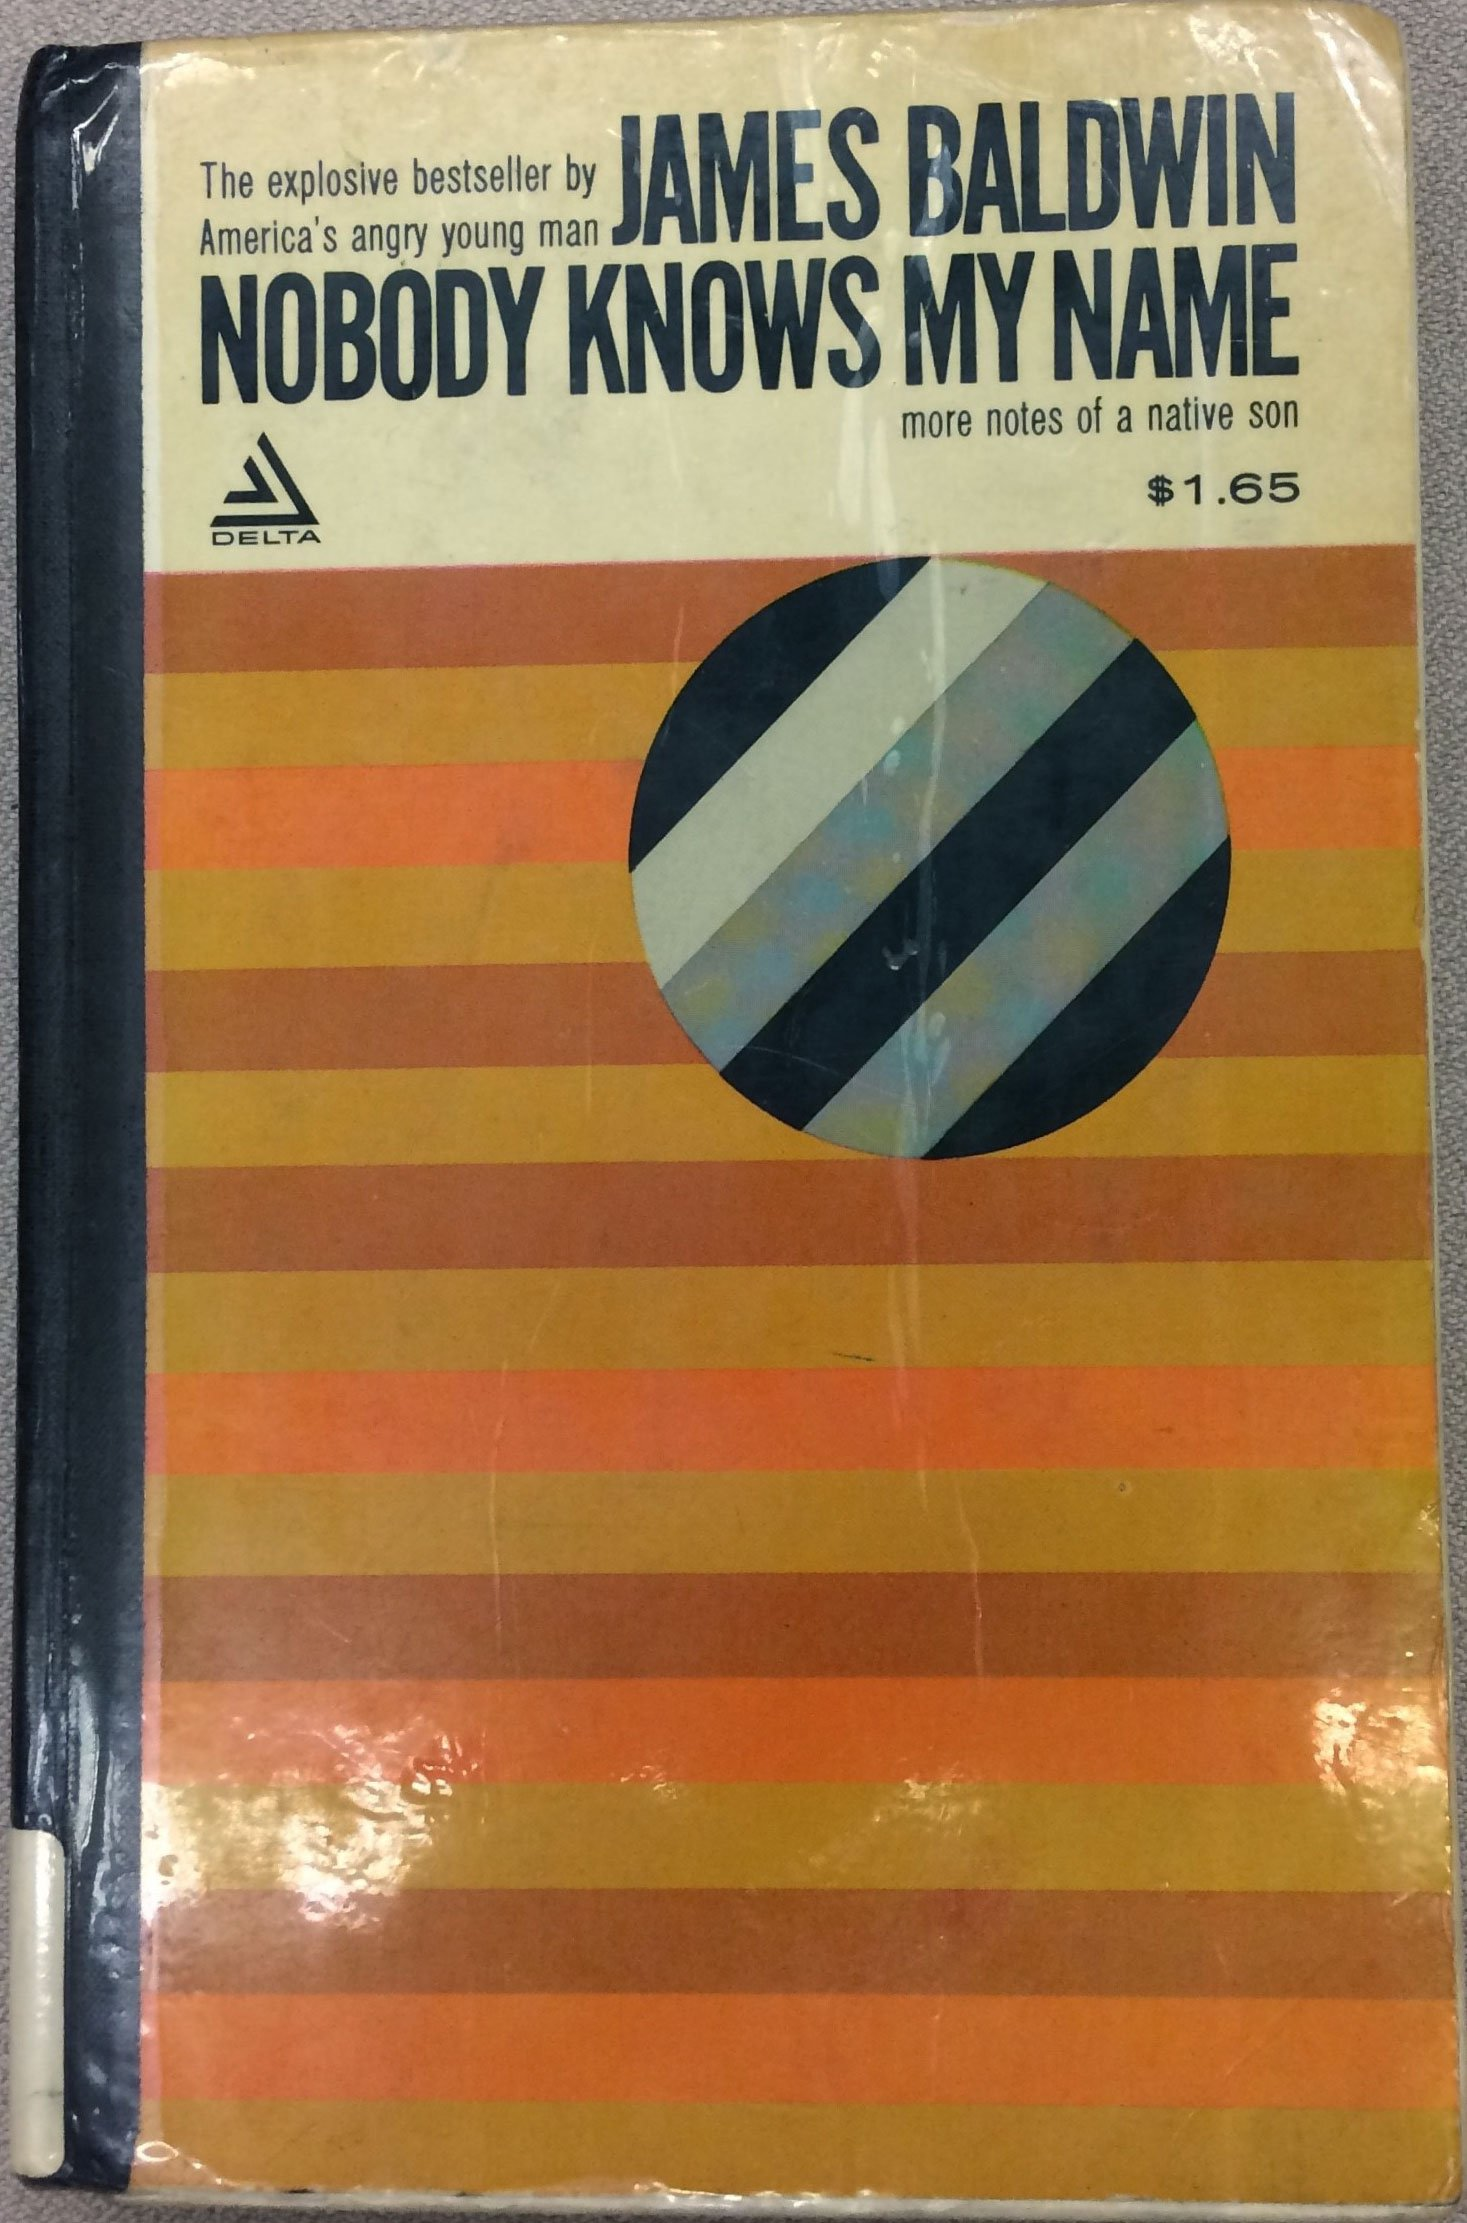 A book's front cover depicting a tilted black-striped circle contrasting with the background's horizontal red stripes.